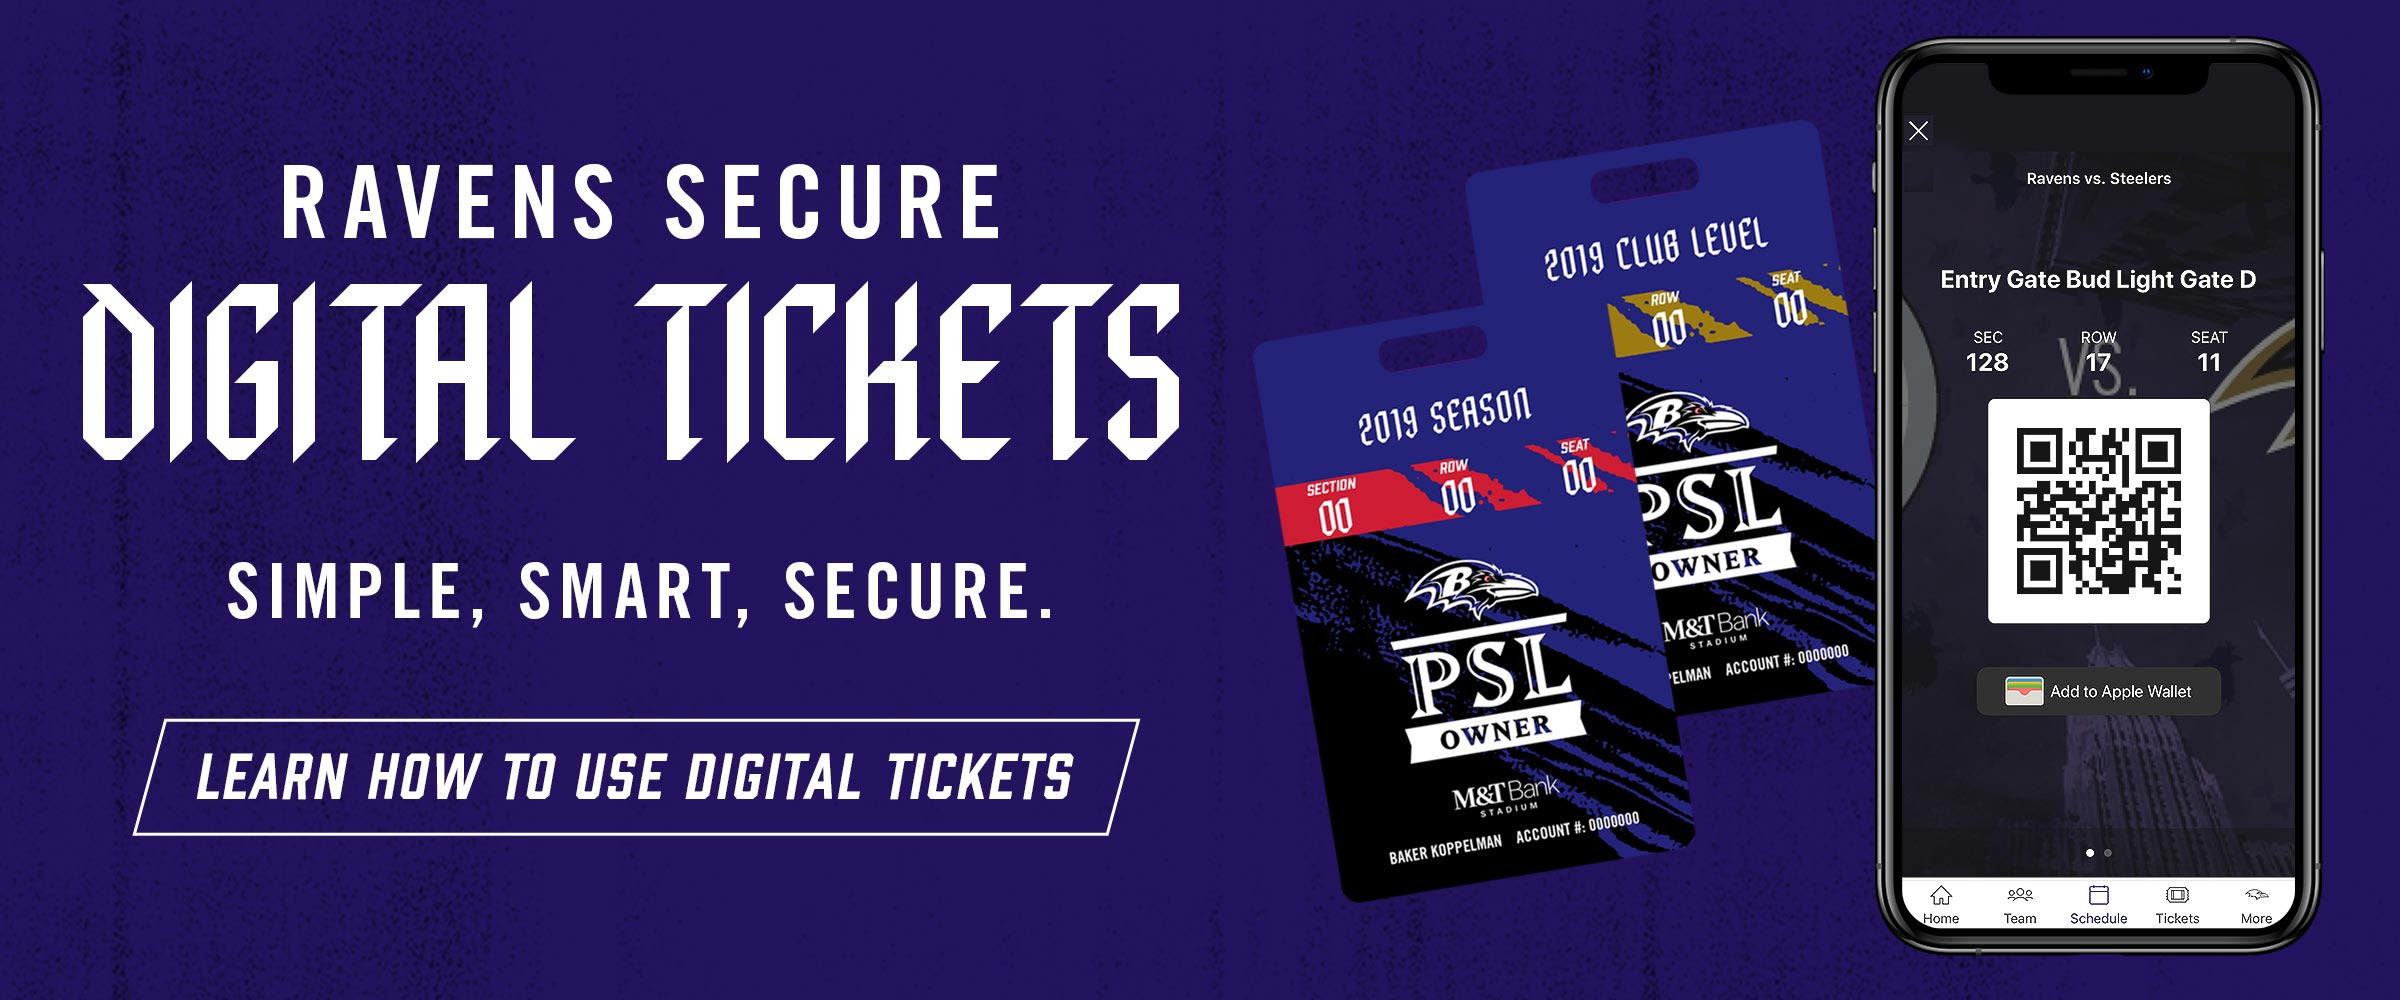 Learn More About Digital Tickets